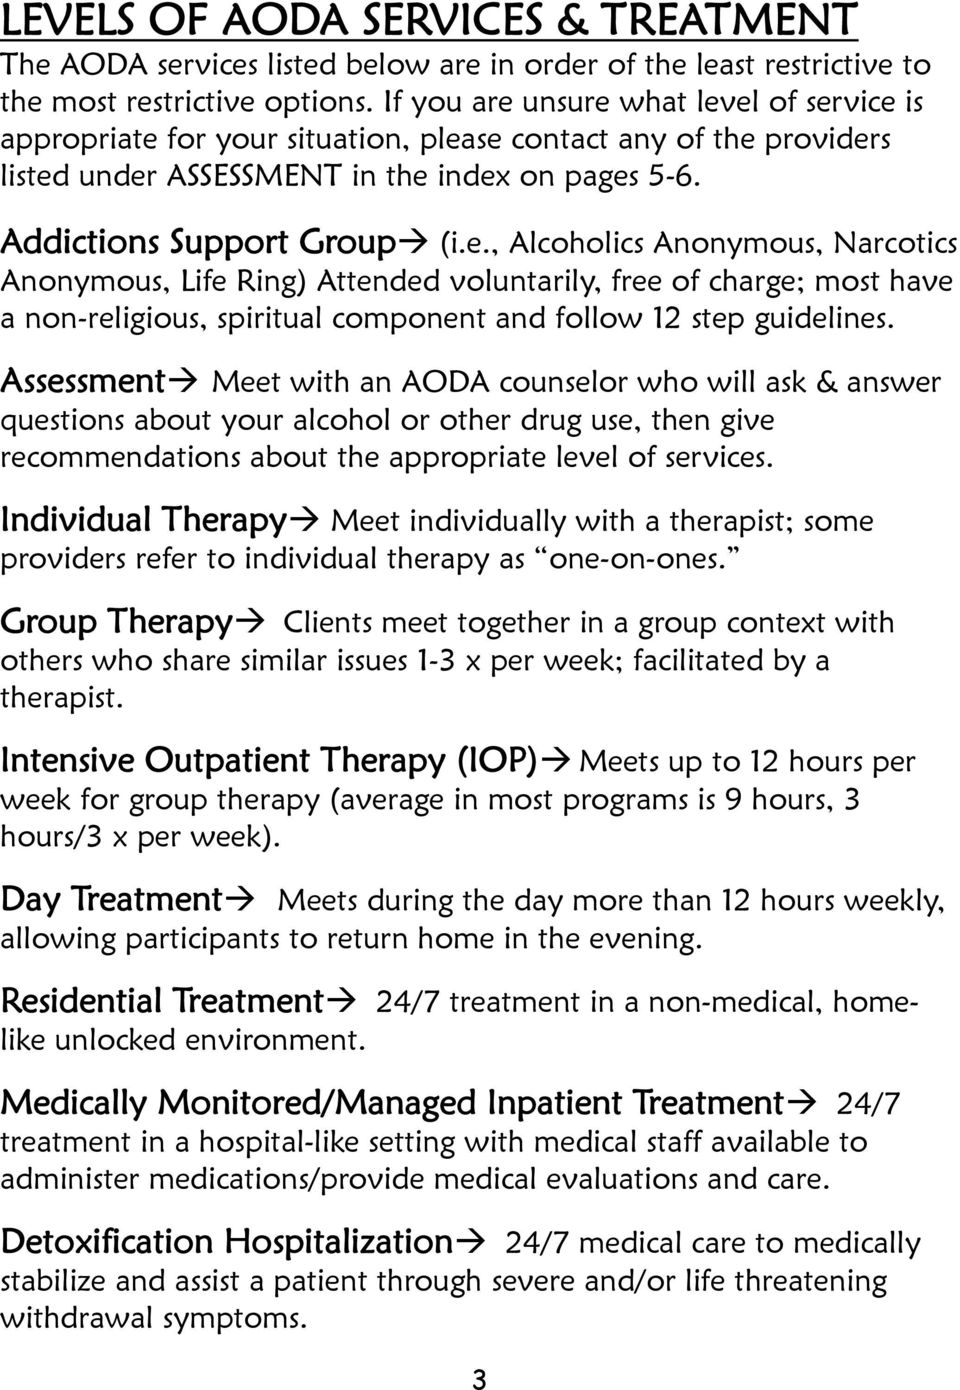 Assessment Meet with an AODA counselor who will ask & answer questions about your alcohol or other drug use, then give recommendations about the appropriate level of services.